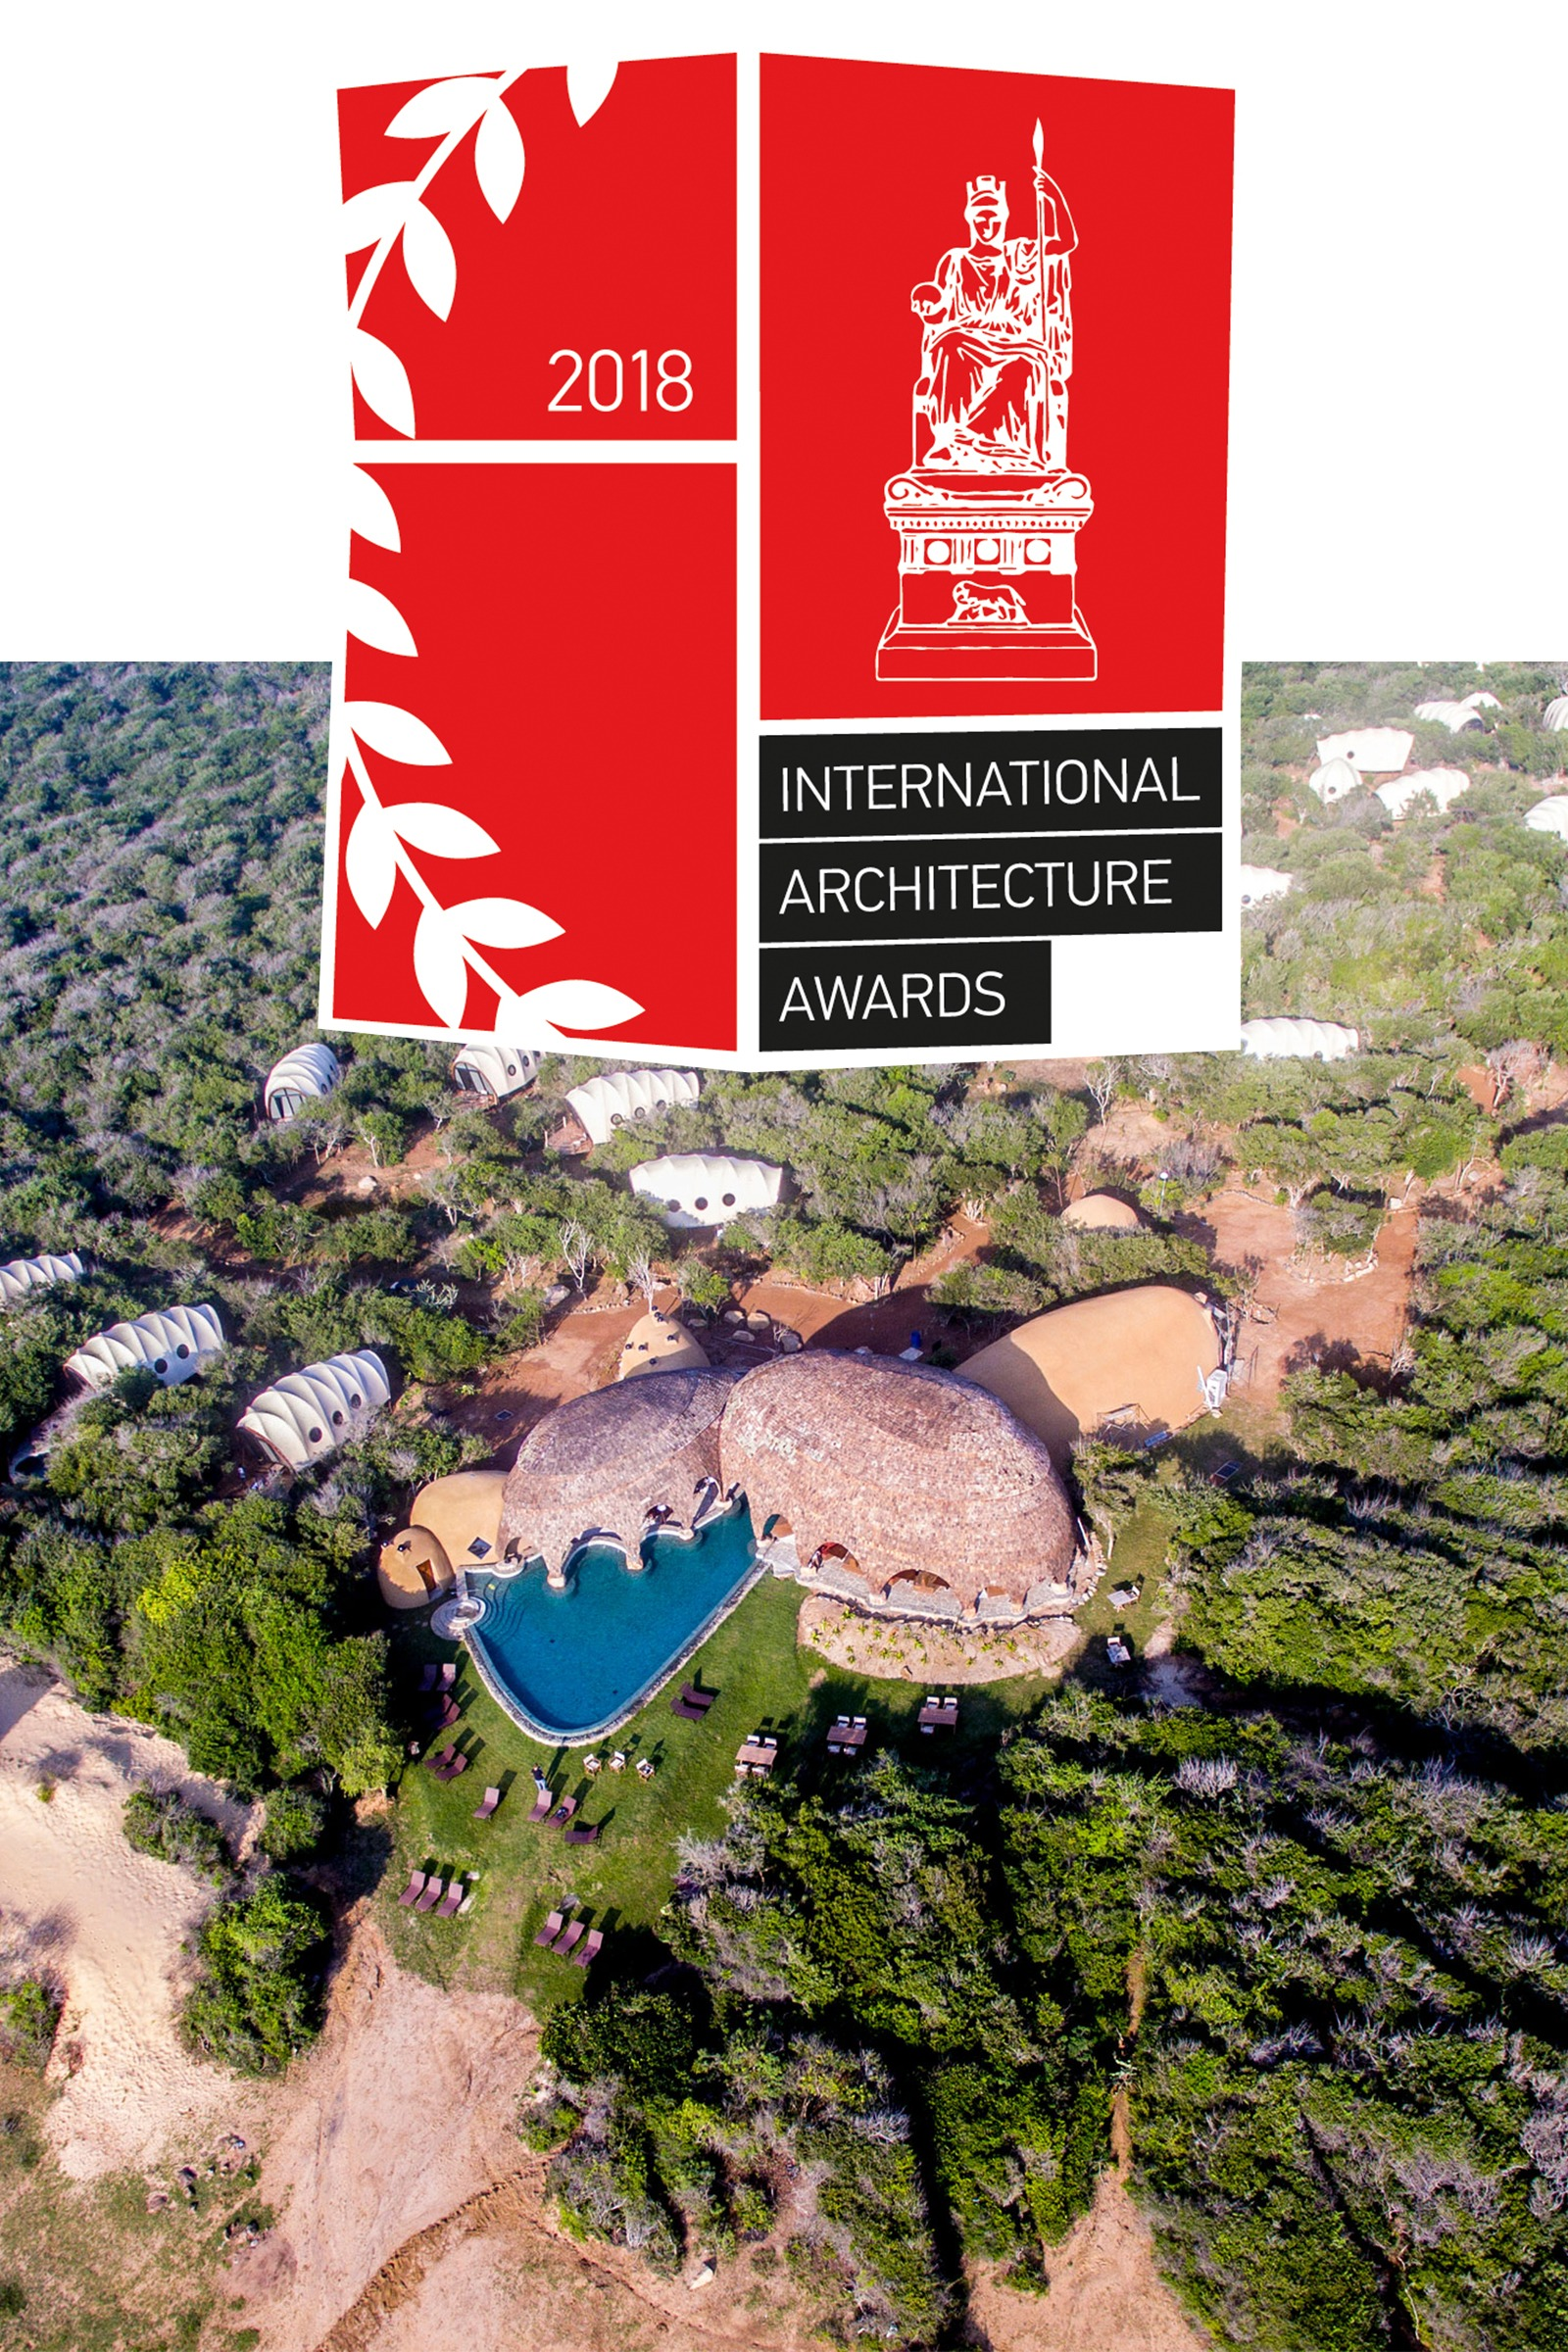 nomadic resorts wins international architecture award 2018 with wild coast tented lodge project in yala national park, sri lanka